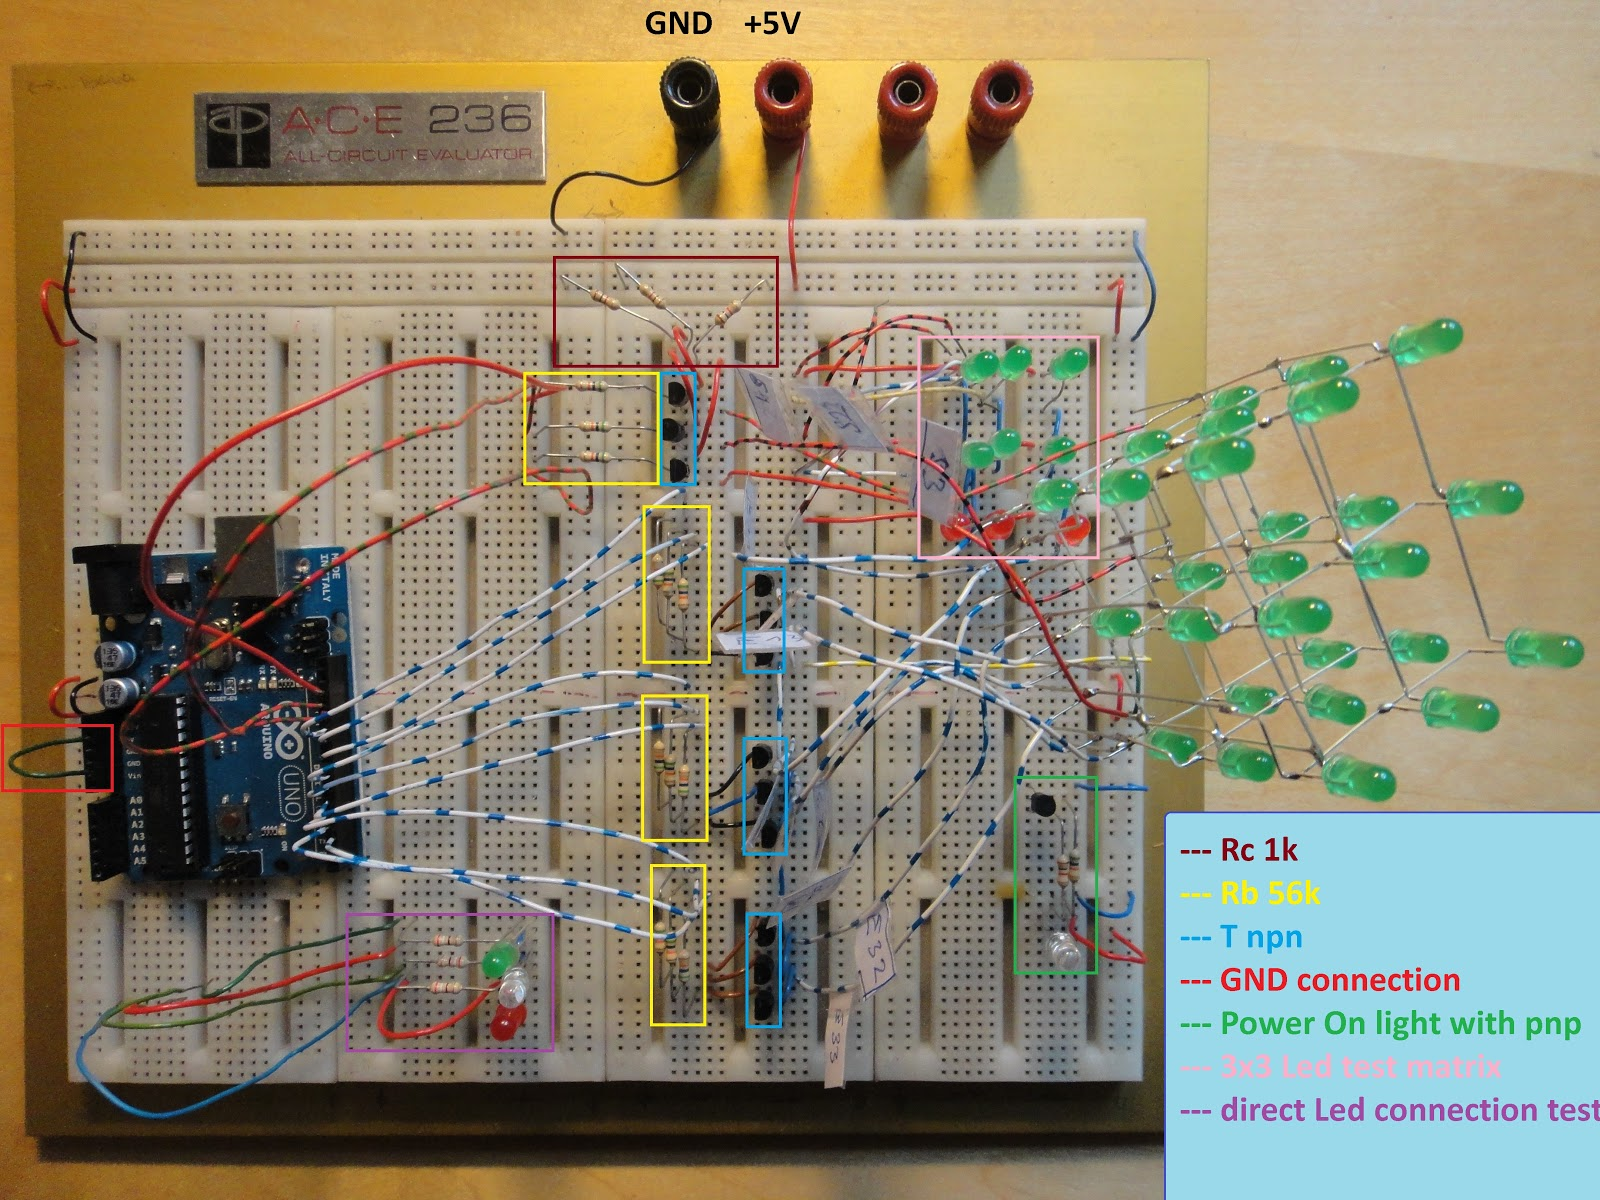 and here my test circut built on a breadboard: